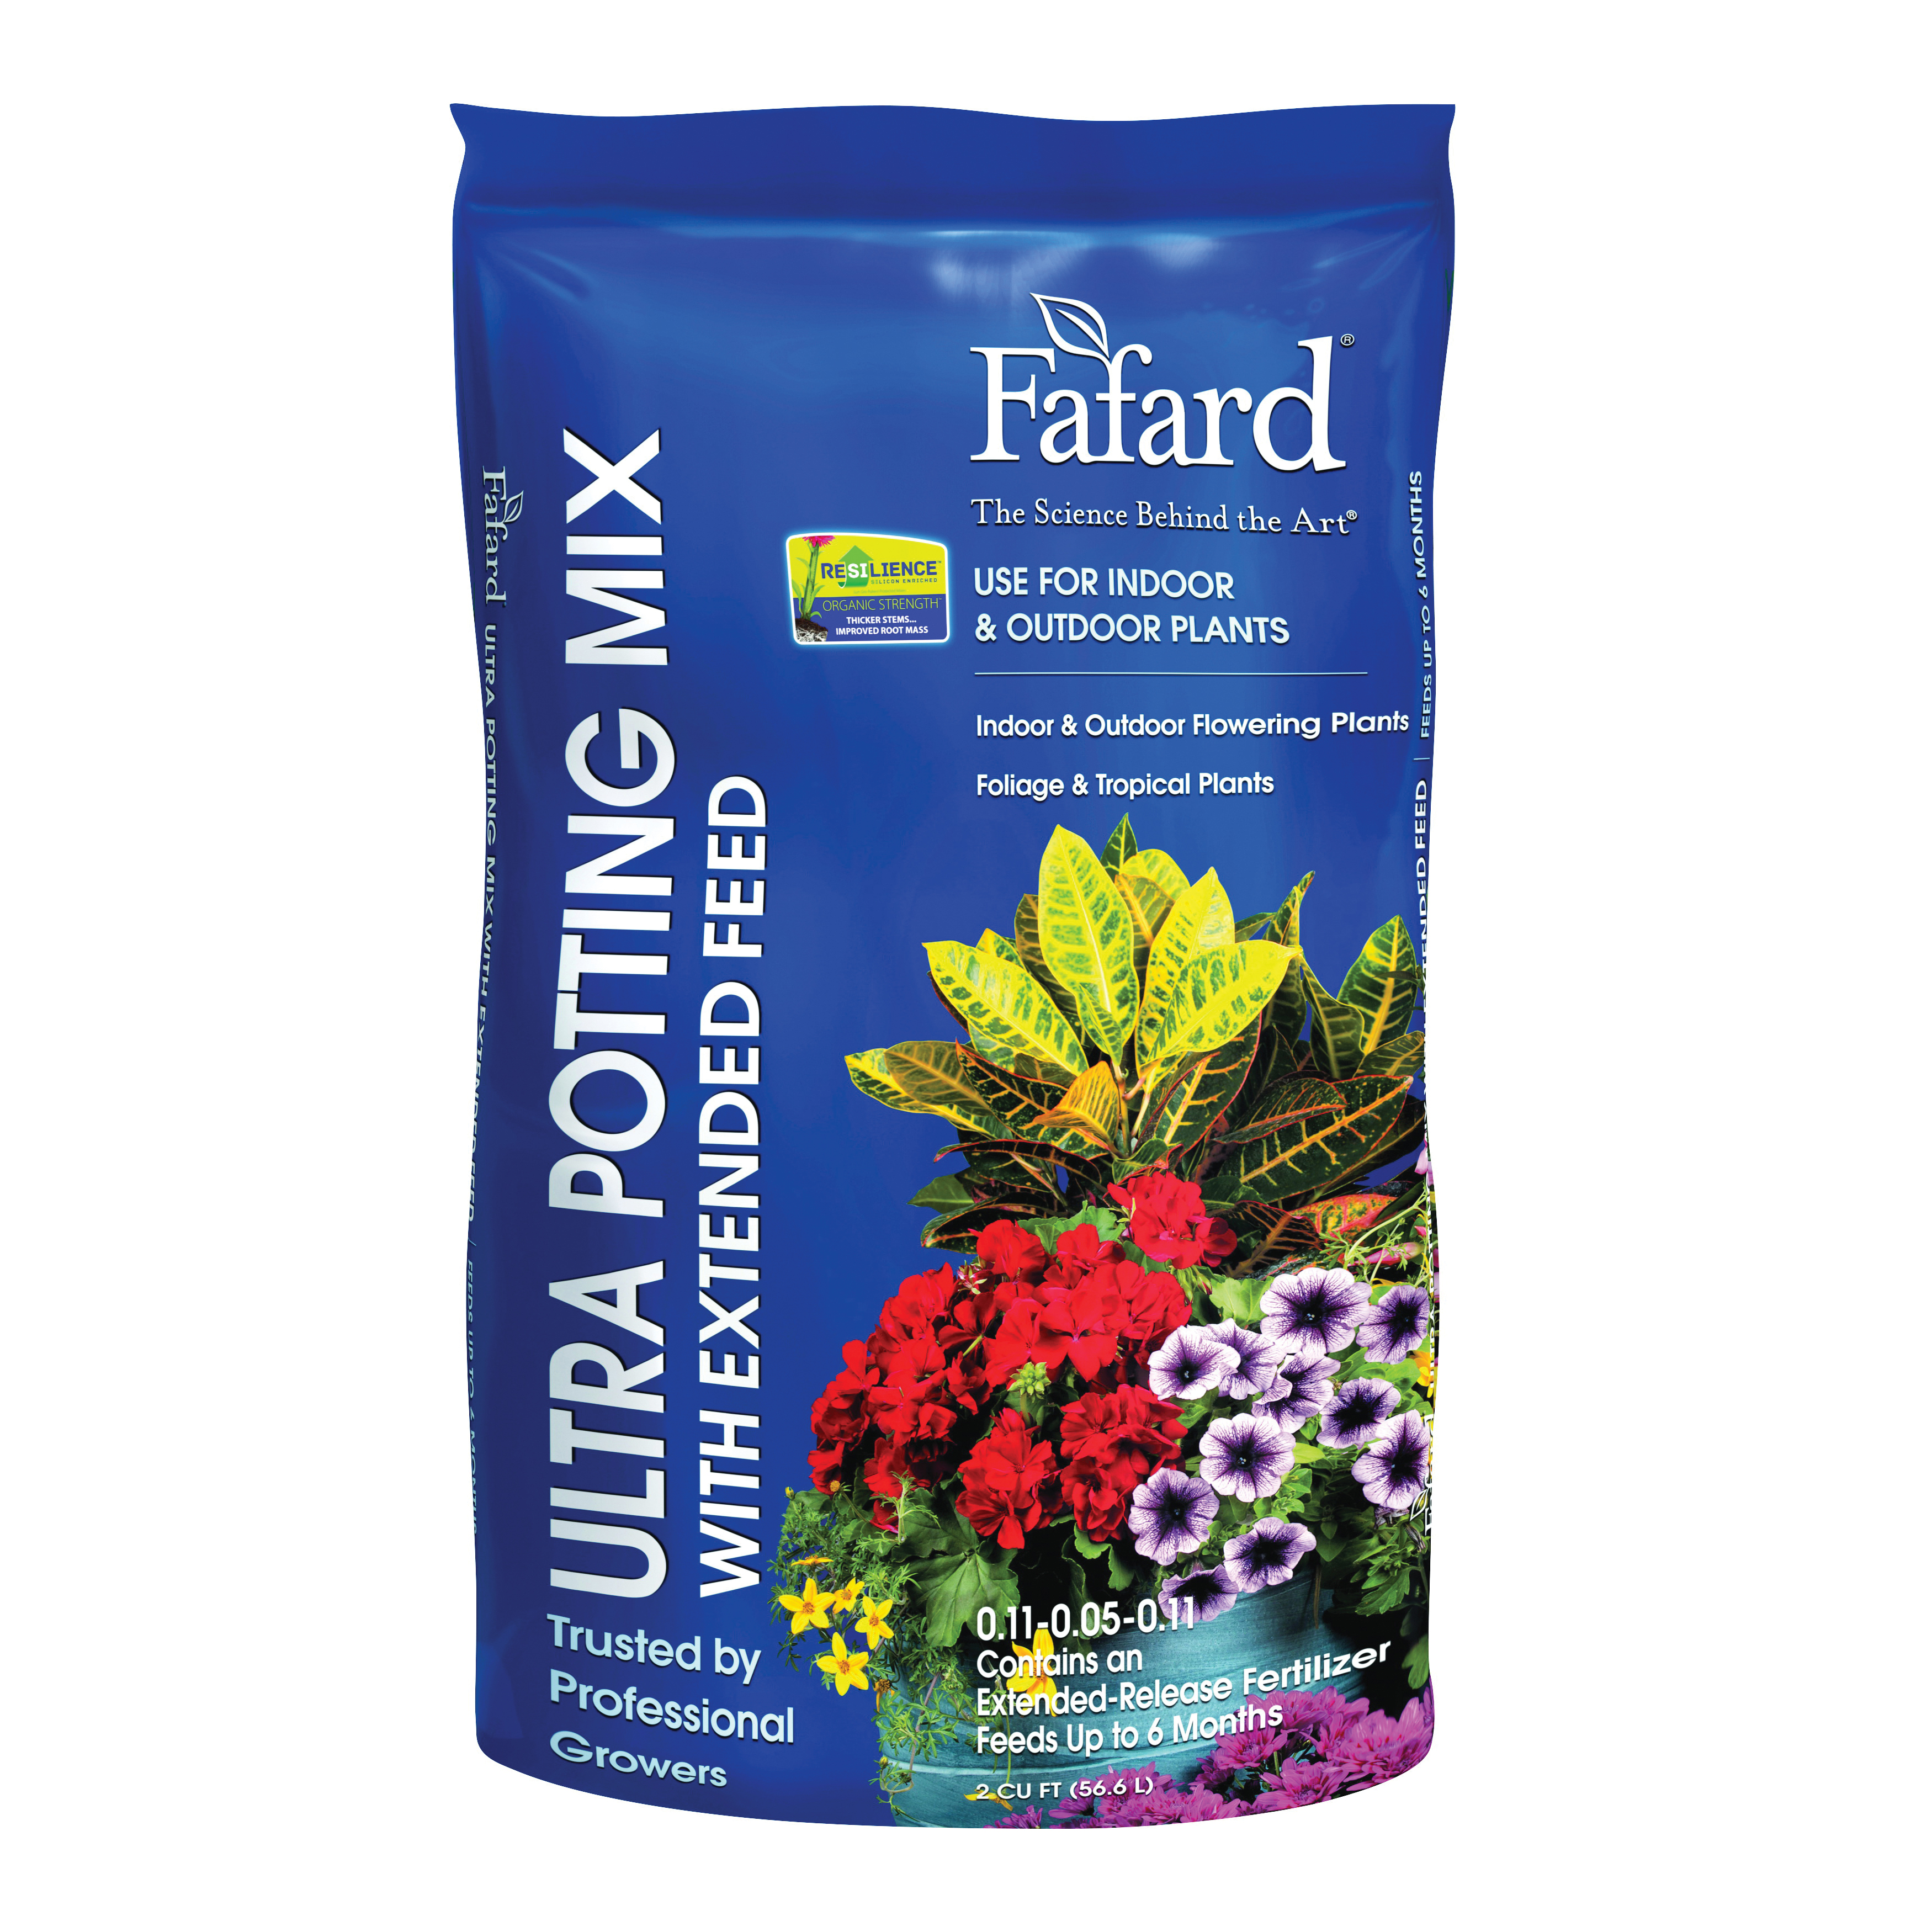 Picture of sun gro Fafard 4005201 Ultra Potting Mix with Extended Feed, 2 cu-ft Coverage Area, Flecks, Brown/White, 40 Package